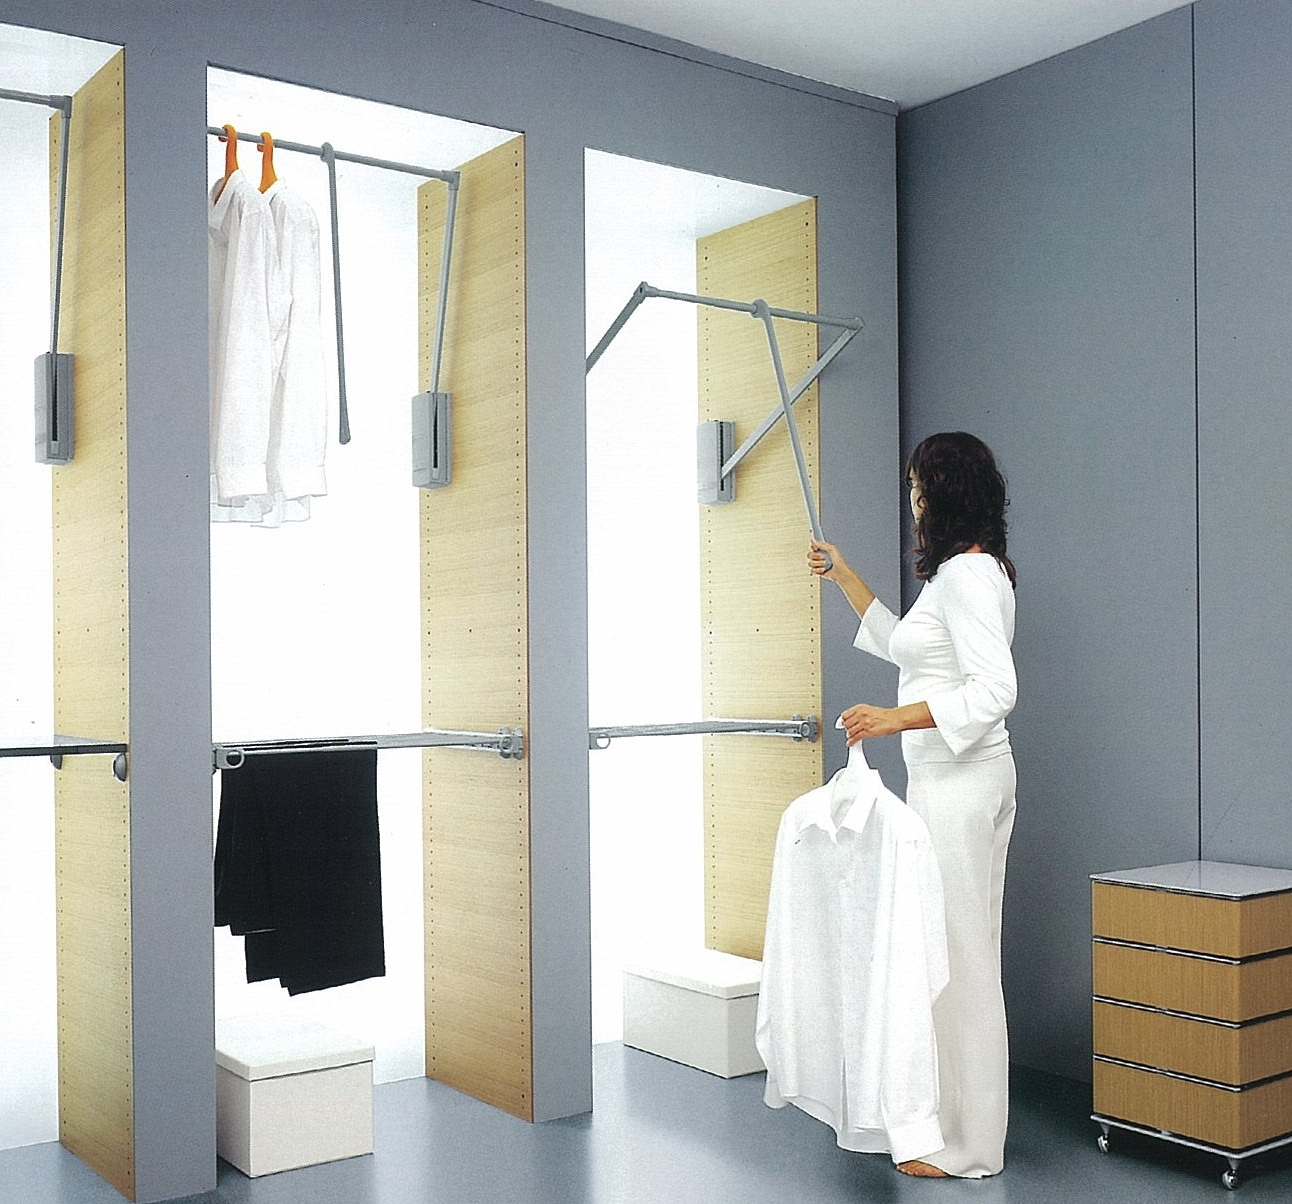 2017 Tall Double Hanging Rail Wardrobes With Pull Down Hanging Rail In Full Height Built In Wardrobe – Maximise (View 1 of 15)